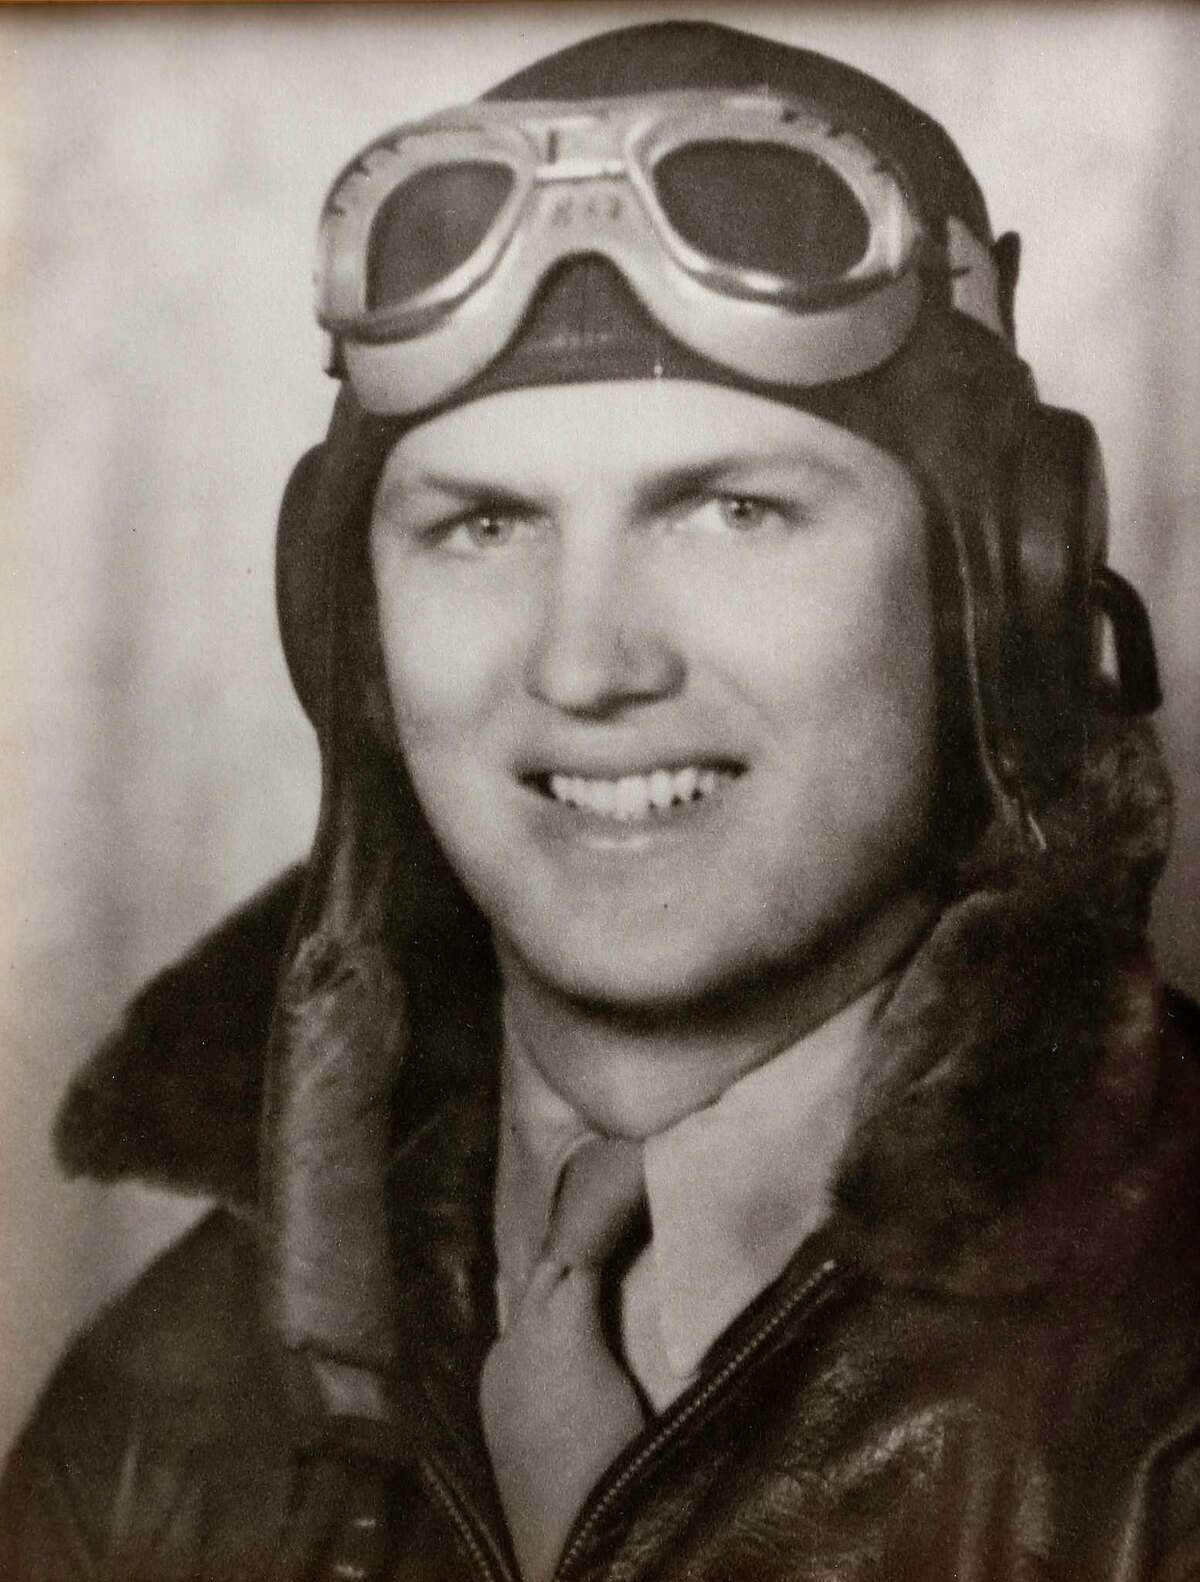 Bob Holley, age 22, a Lieutenant junior grade in the Navy during World War II. For Native Texan. ( Courtesy photo from Bob Holley)